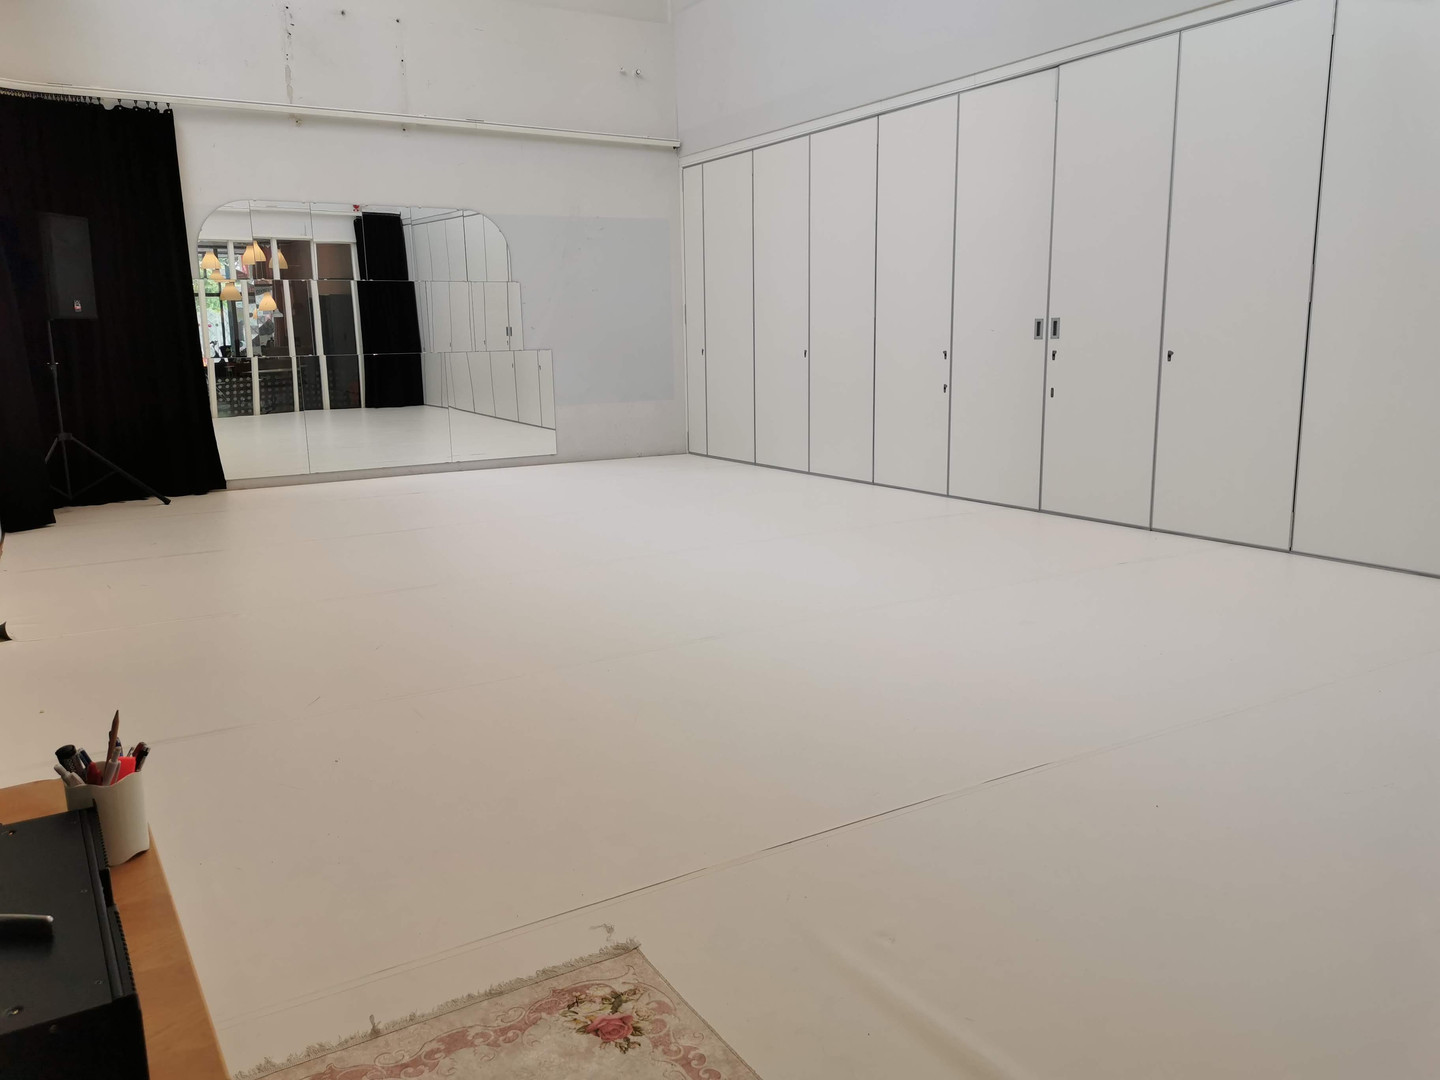 Studio 1, divided by the folding wall.